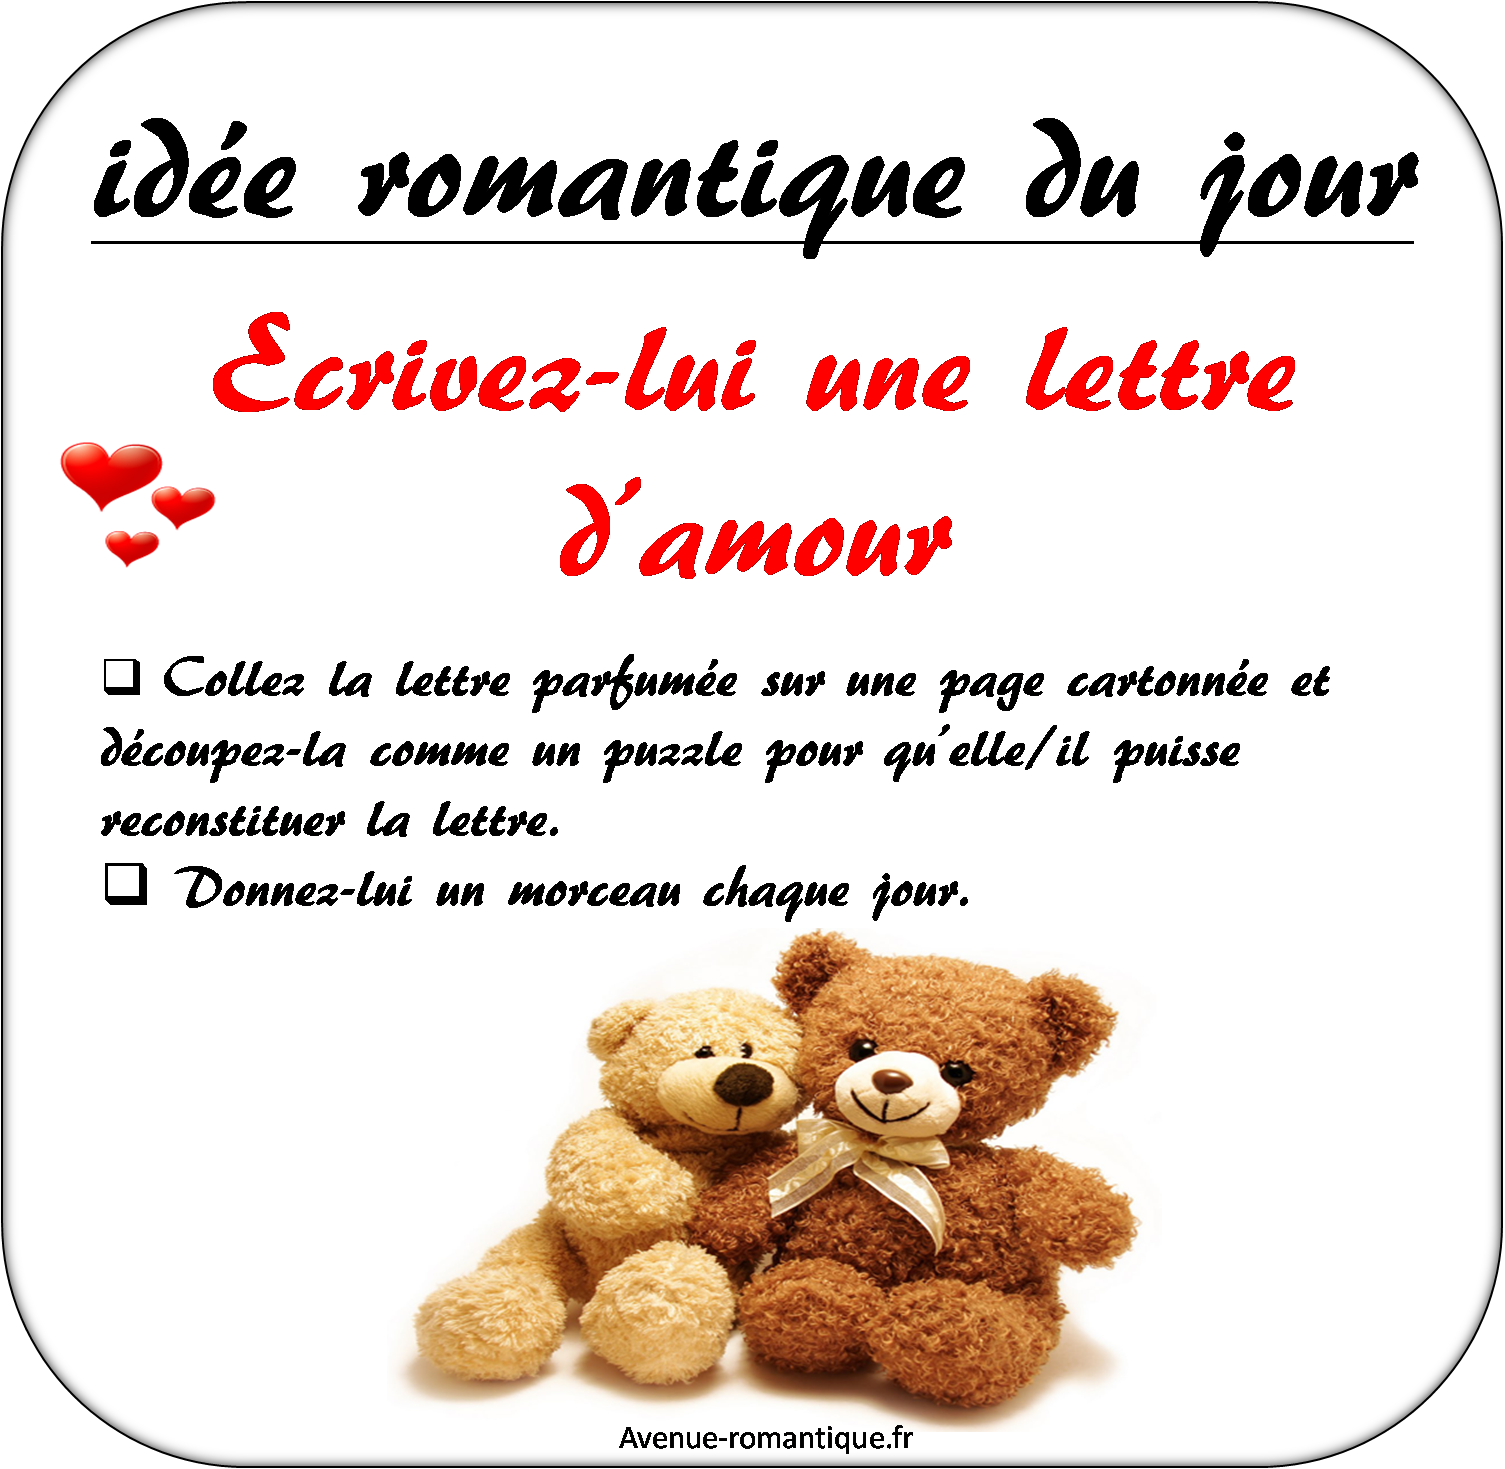 idee lettre Idee lettre exemple demande administrative | Codesducambresis idee lettre